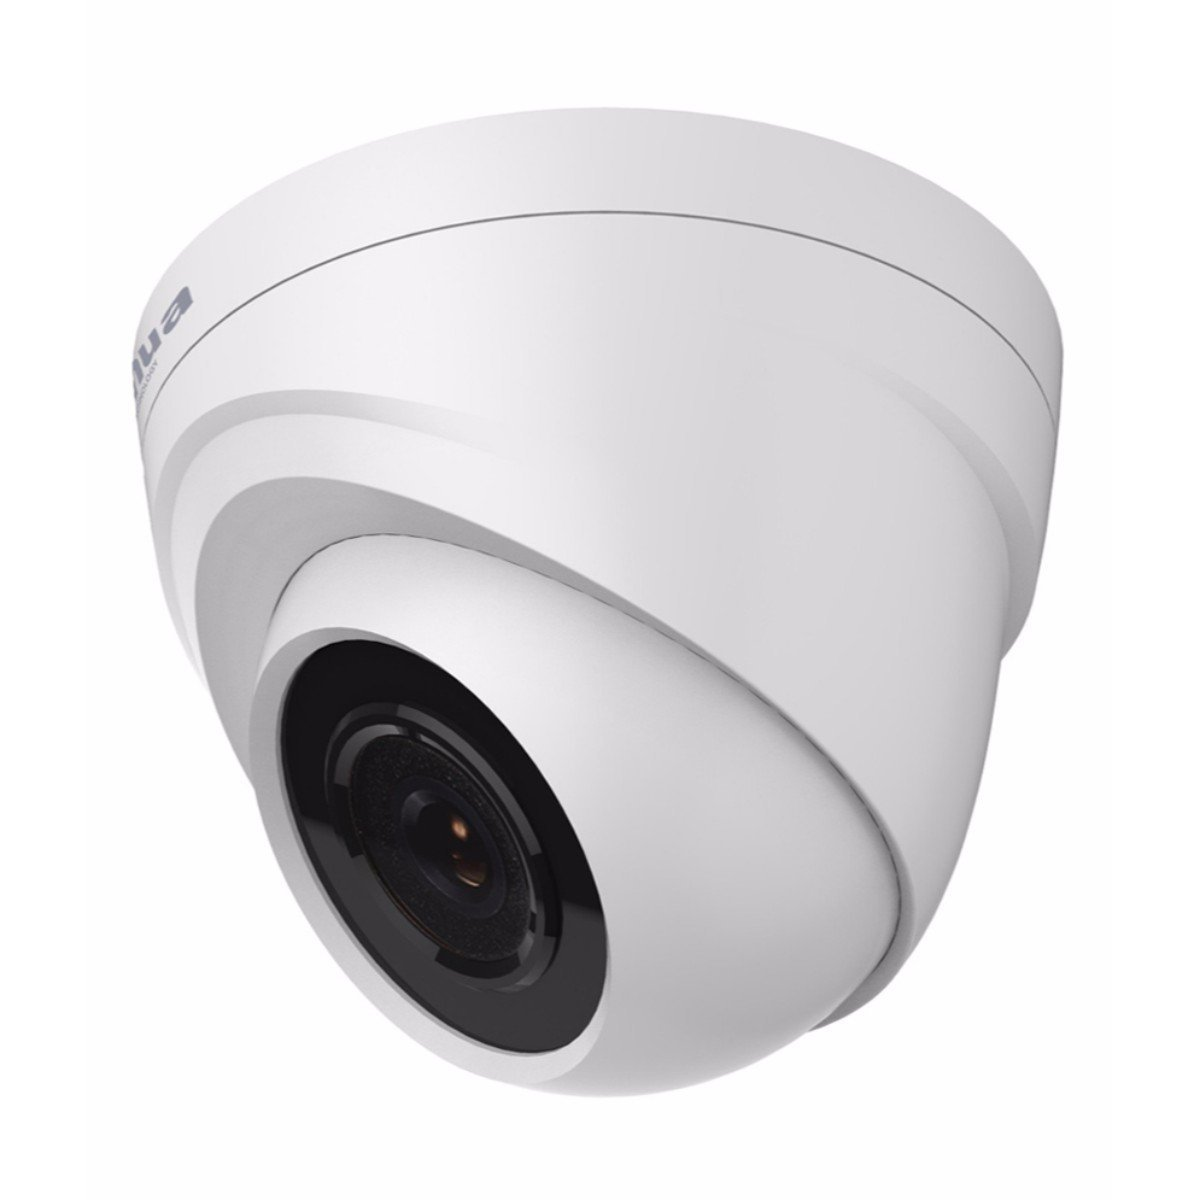 Dahua DH-HAC-HDW1400SP Lite 4MP Dome Camera